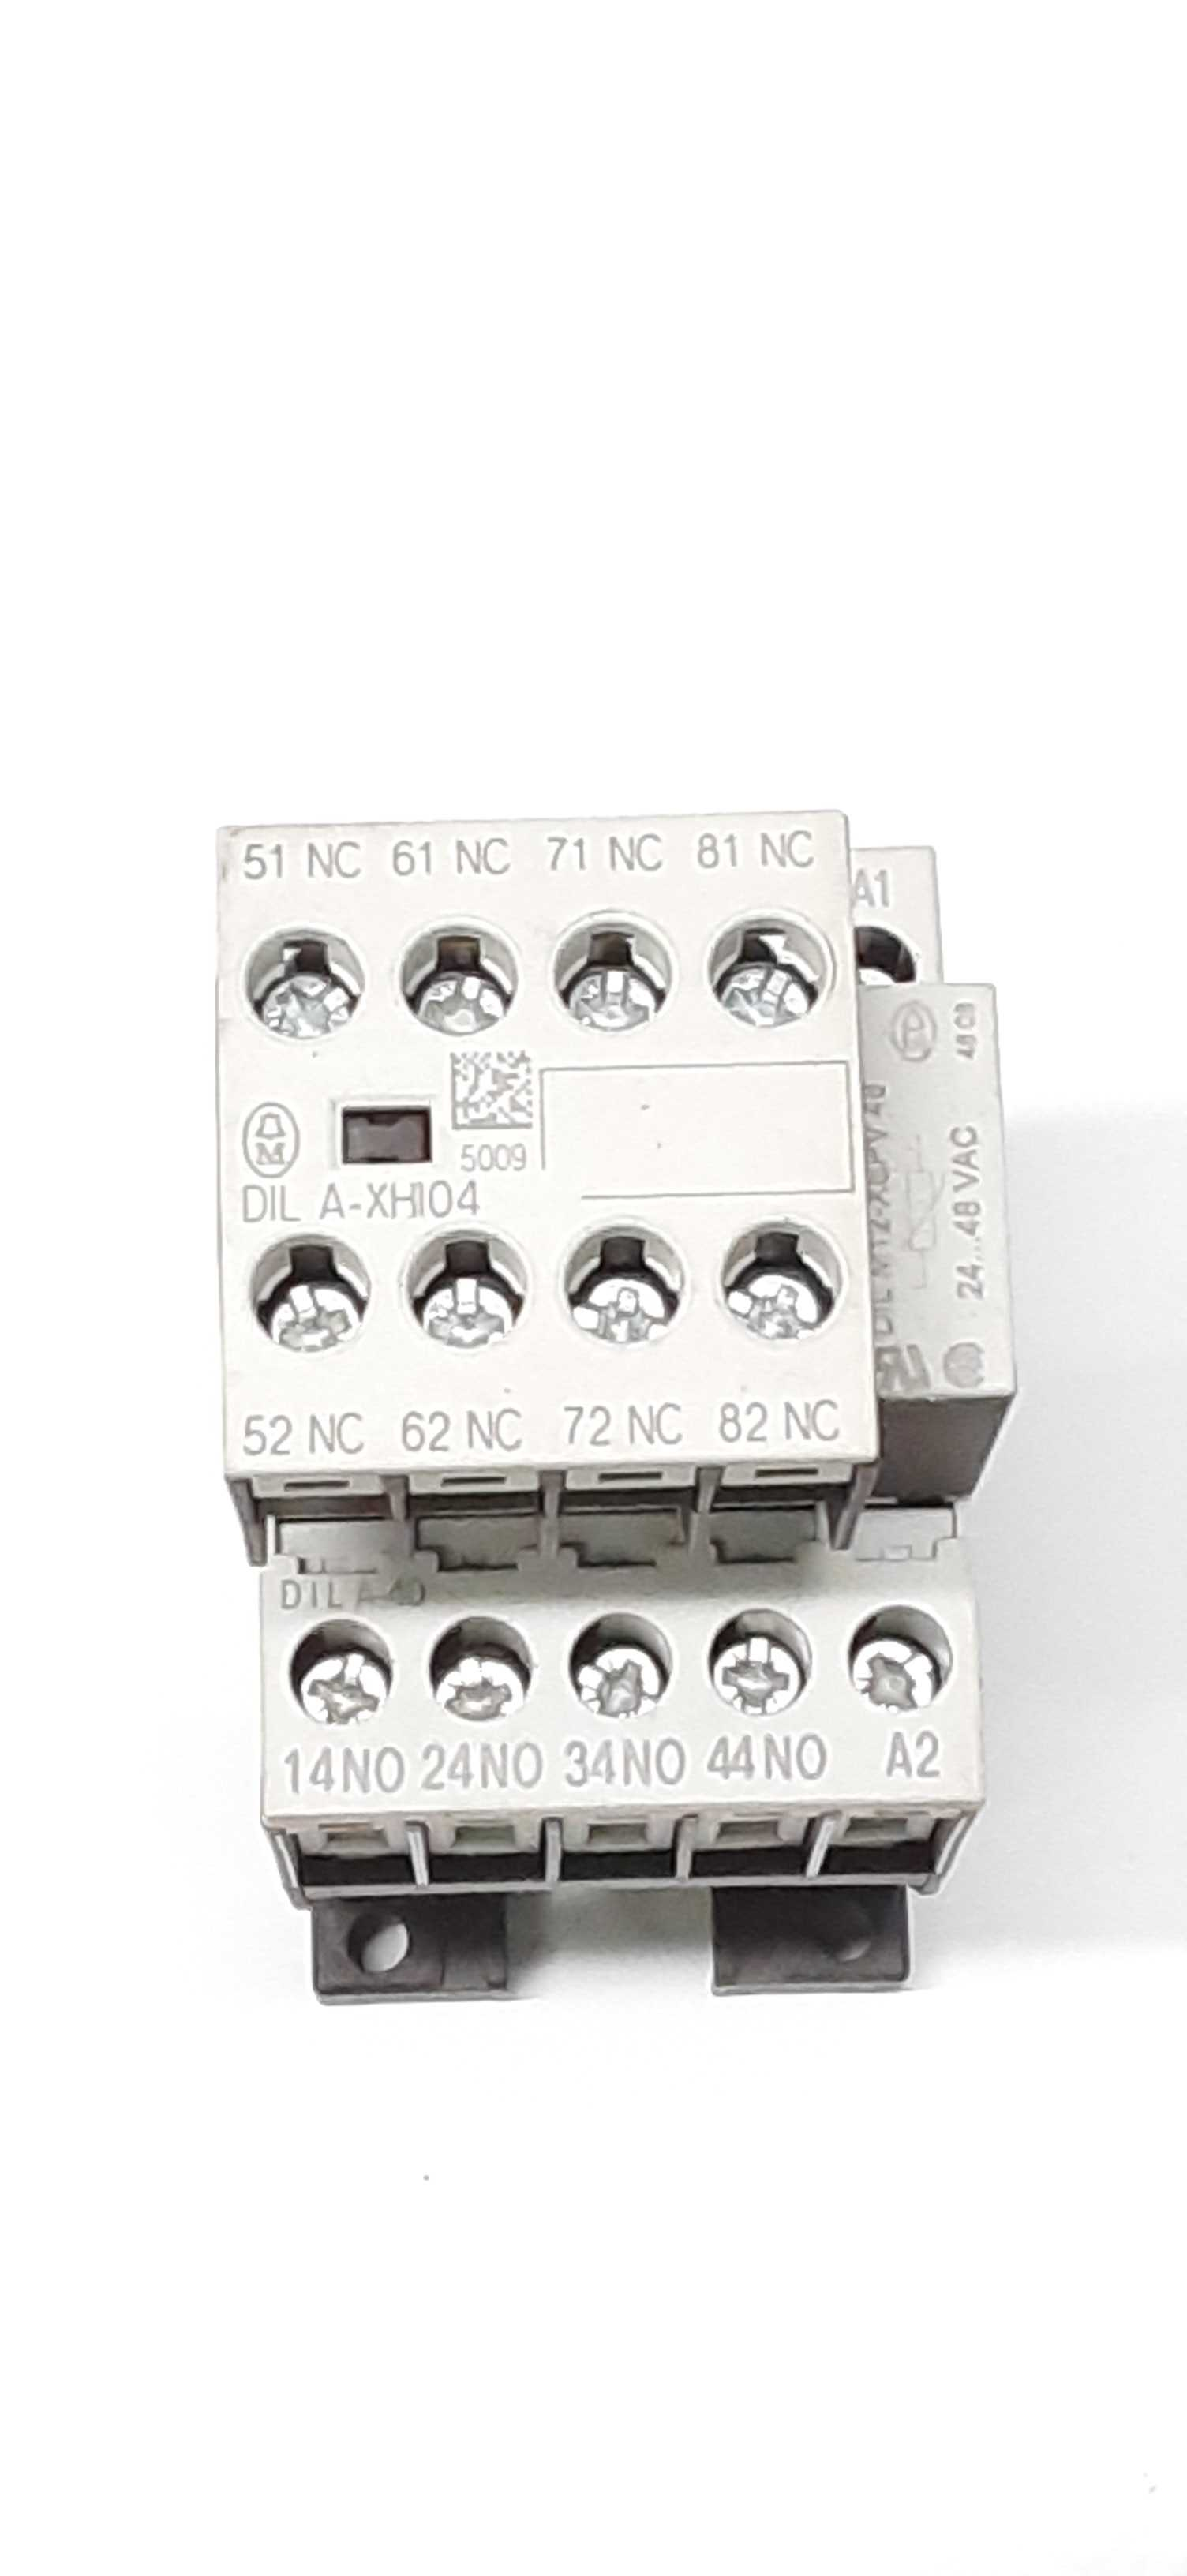 Moeller DIL A-XHI04 Auxiliary Contactor w/ Aux DILM12-XSPV 24...48vac